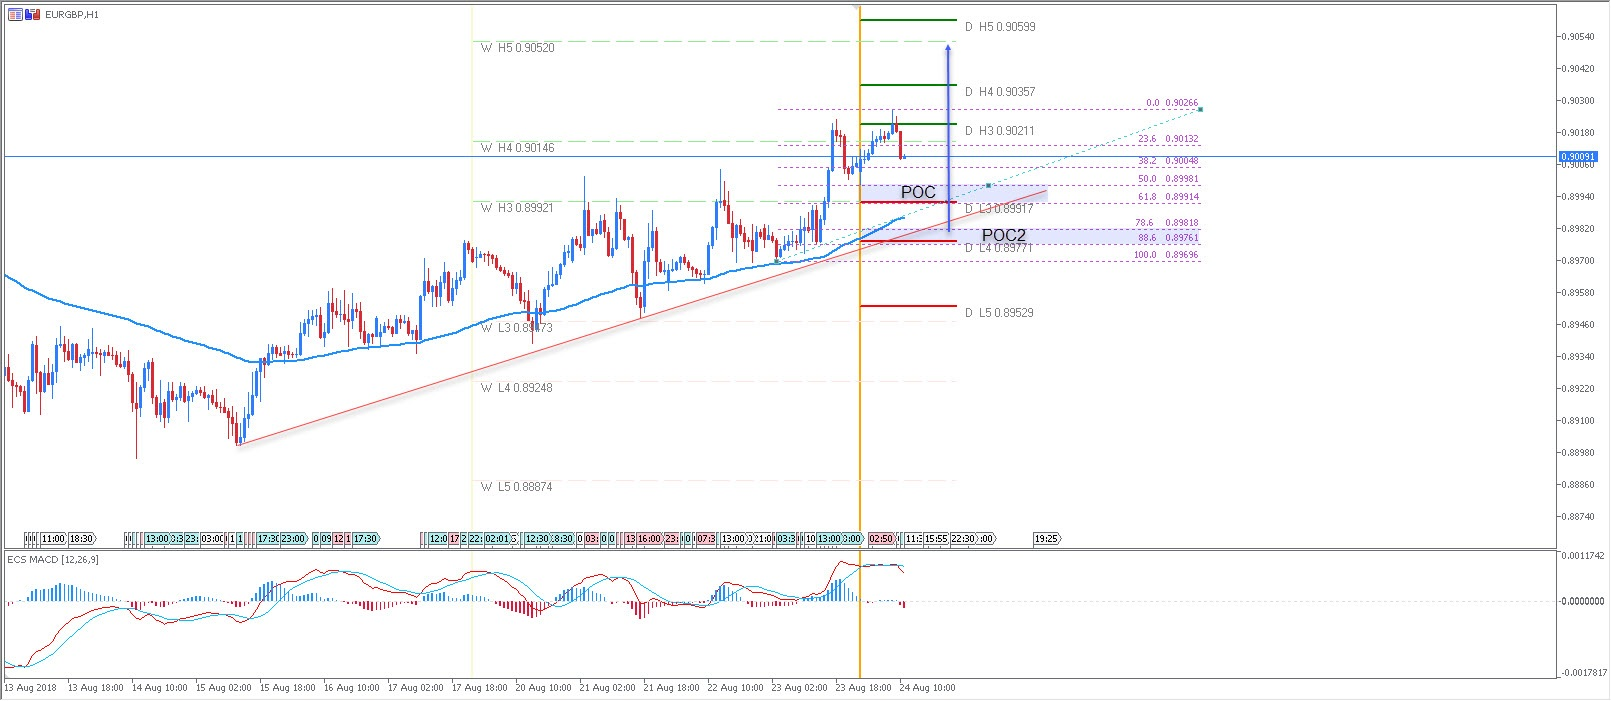 EUR/GBP Bullish Zig Zag Pattern Possibly Targeting 0.9050